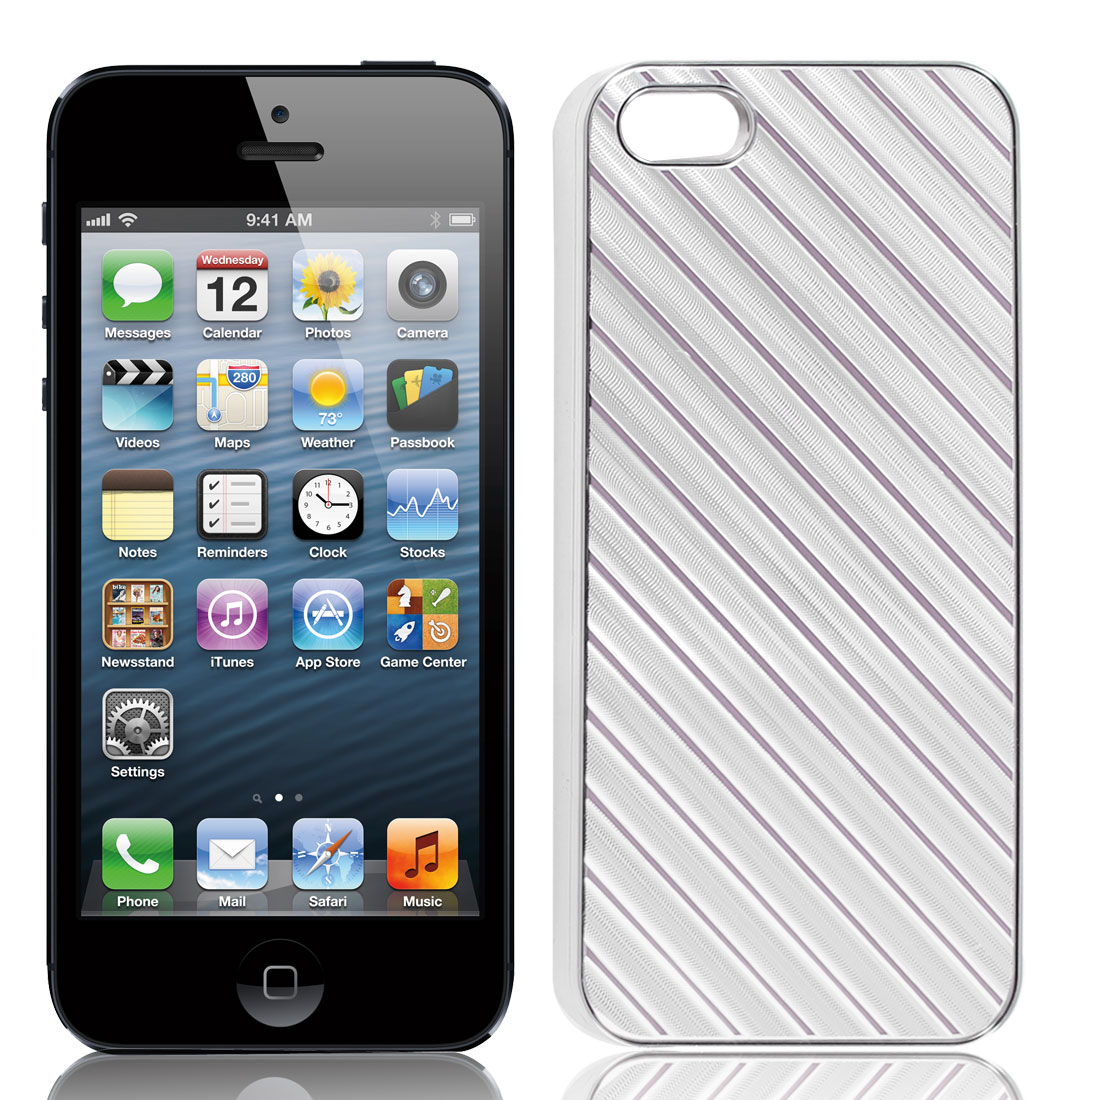 Silver Tone Pink Slanted Striped Hard Plastic Back Case Shell for iPhone 5 5G